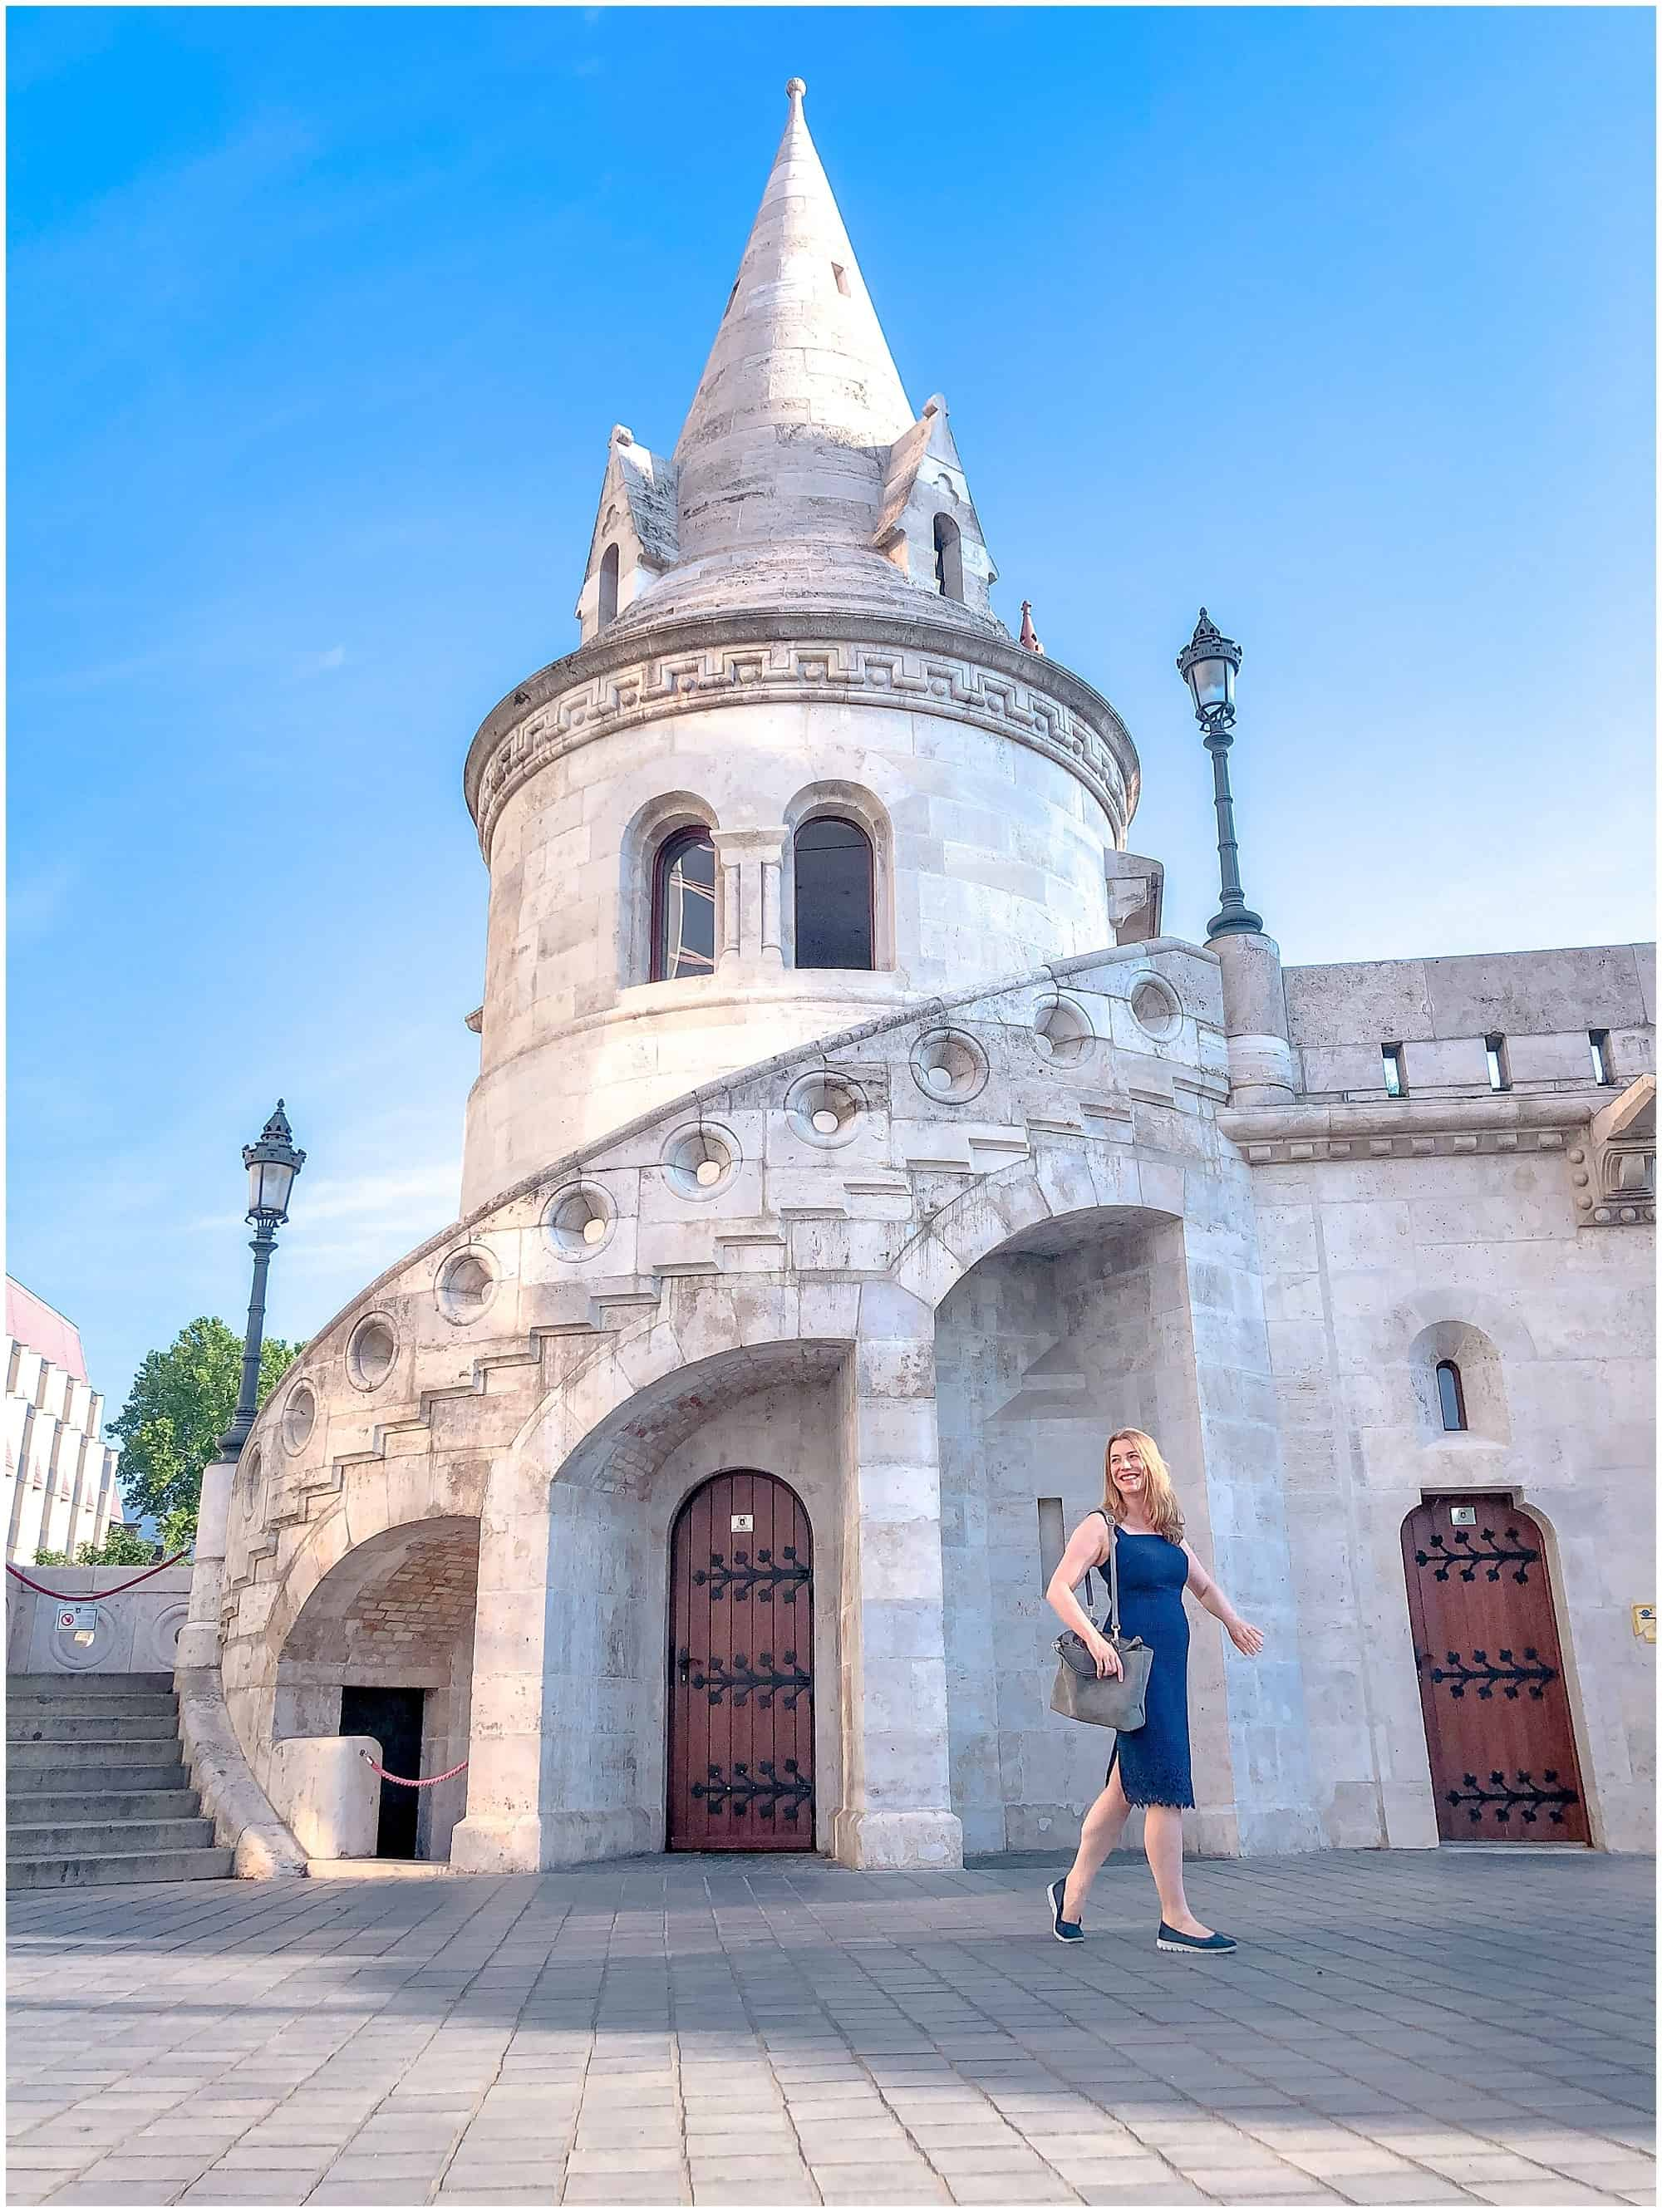 Abigail King walking past turret on Fishermen's Bastion Budapest